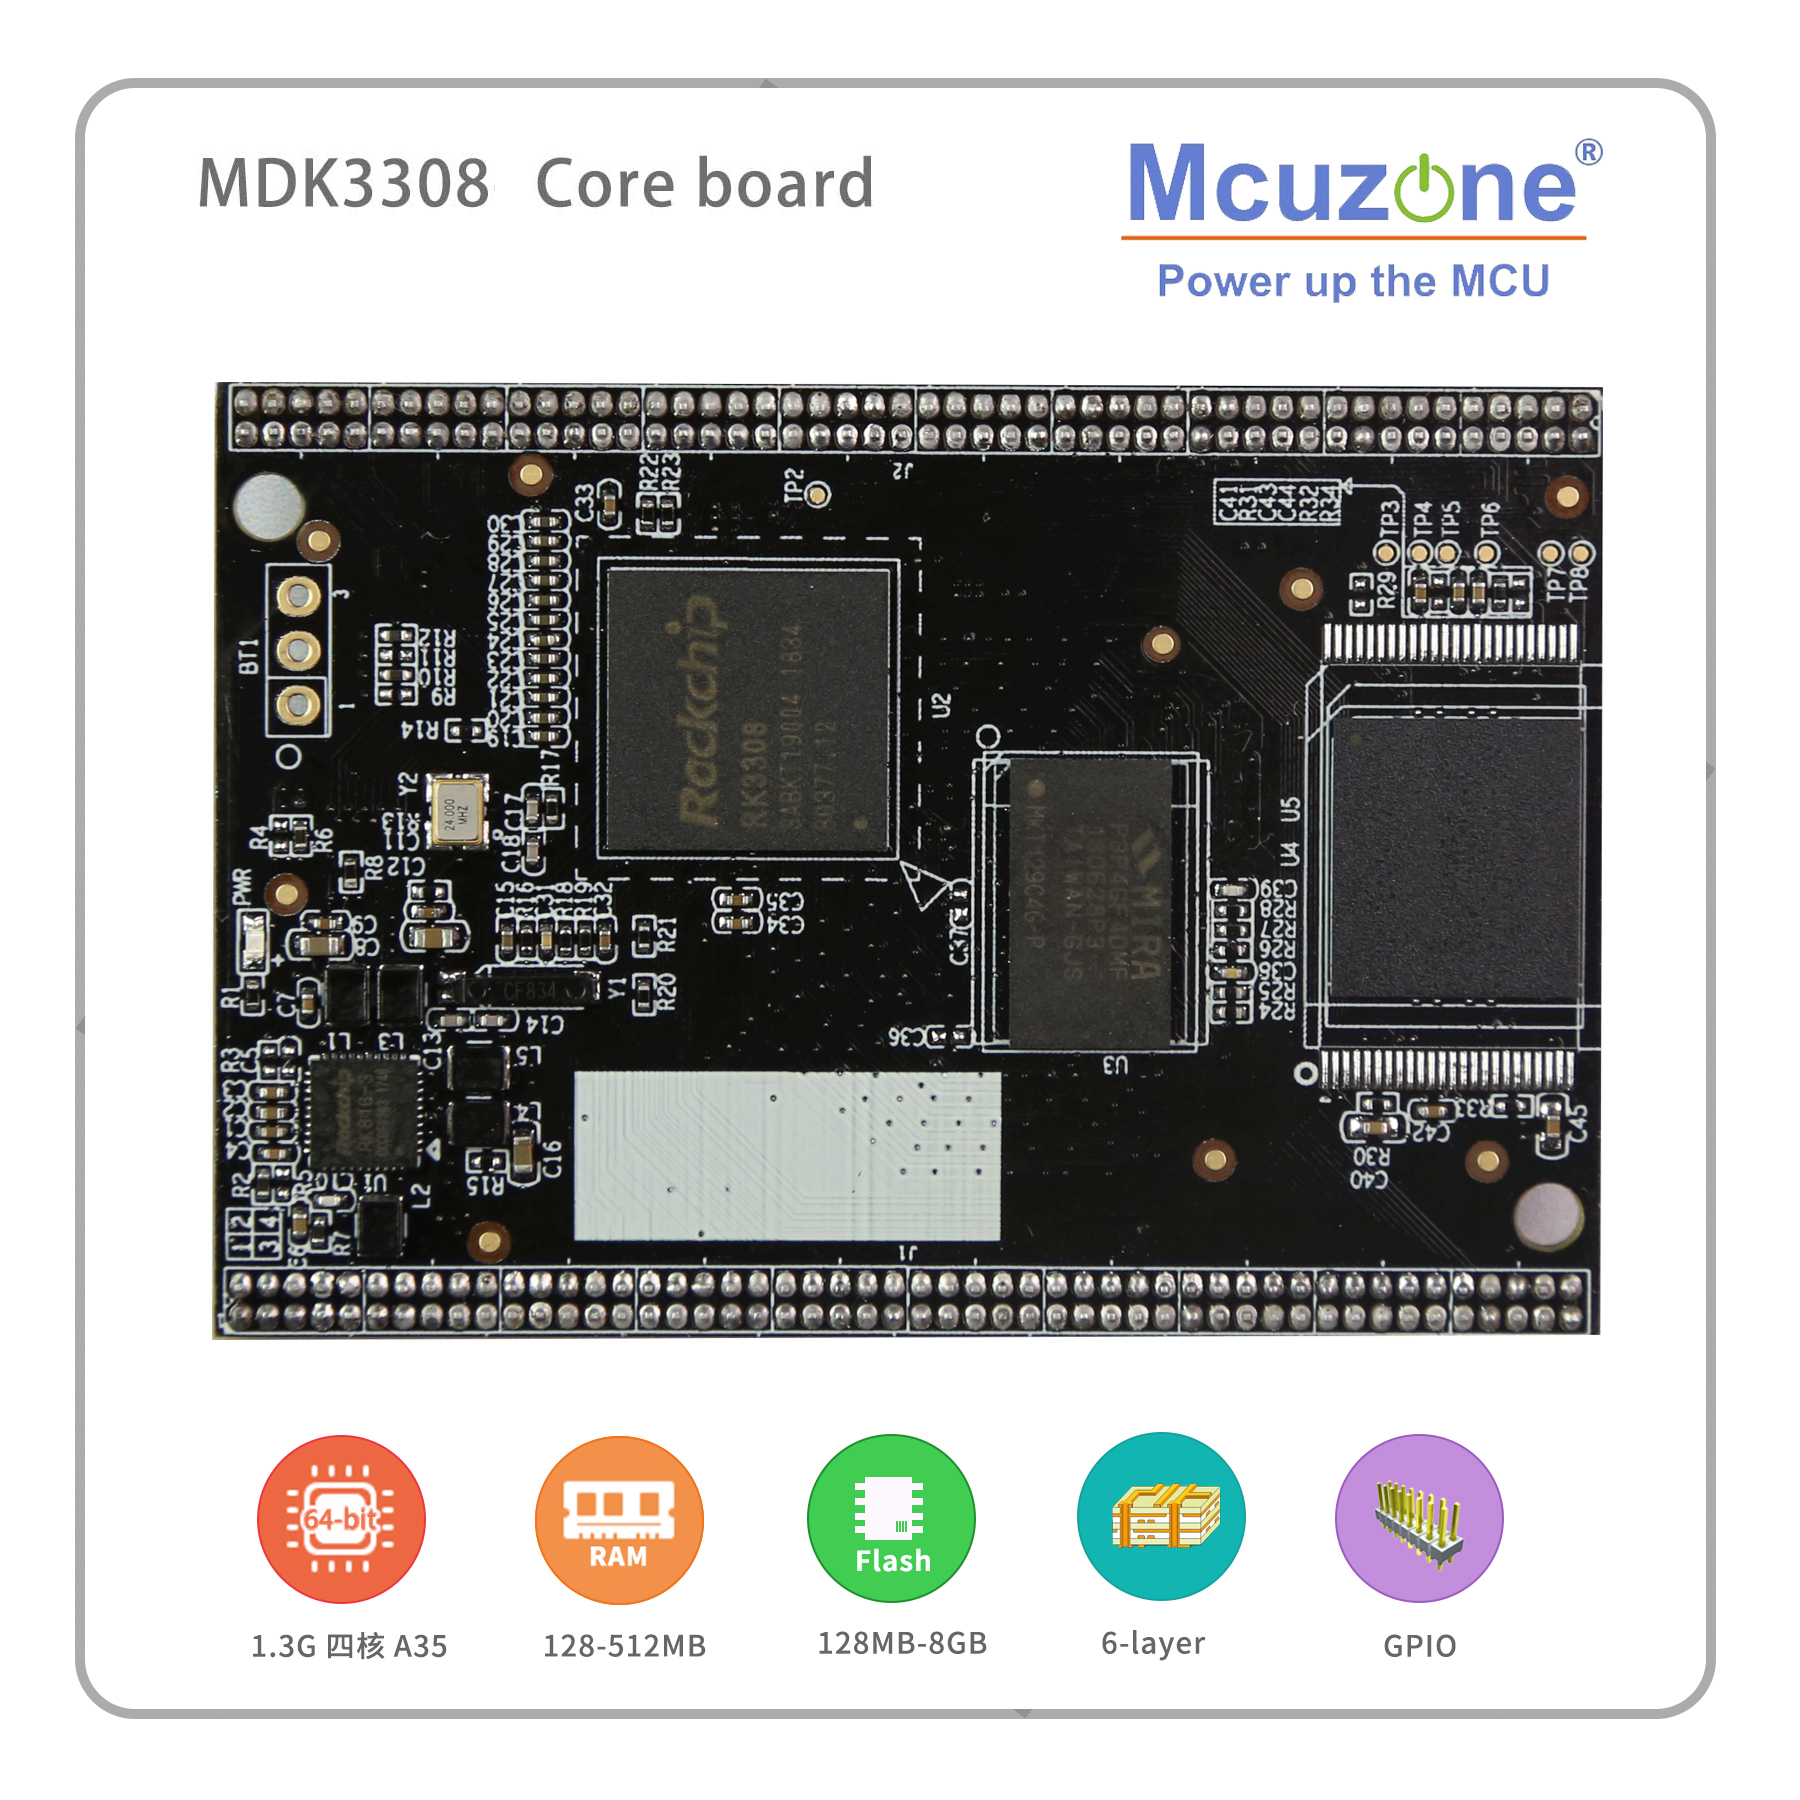 Rockchip RK3308 Based MDK3308 Coreboard, Quad-core Cortex-A35 Up To 1.3GHz, 256/512MB DDR3/3L 256MB NAND 8GB EMMC, AI VA